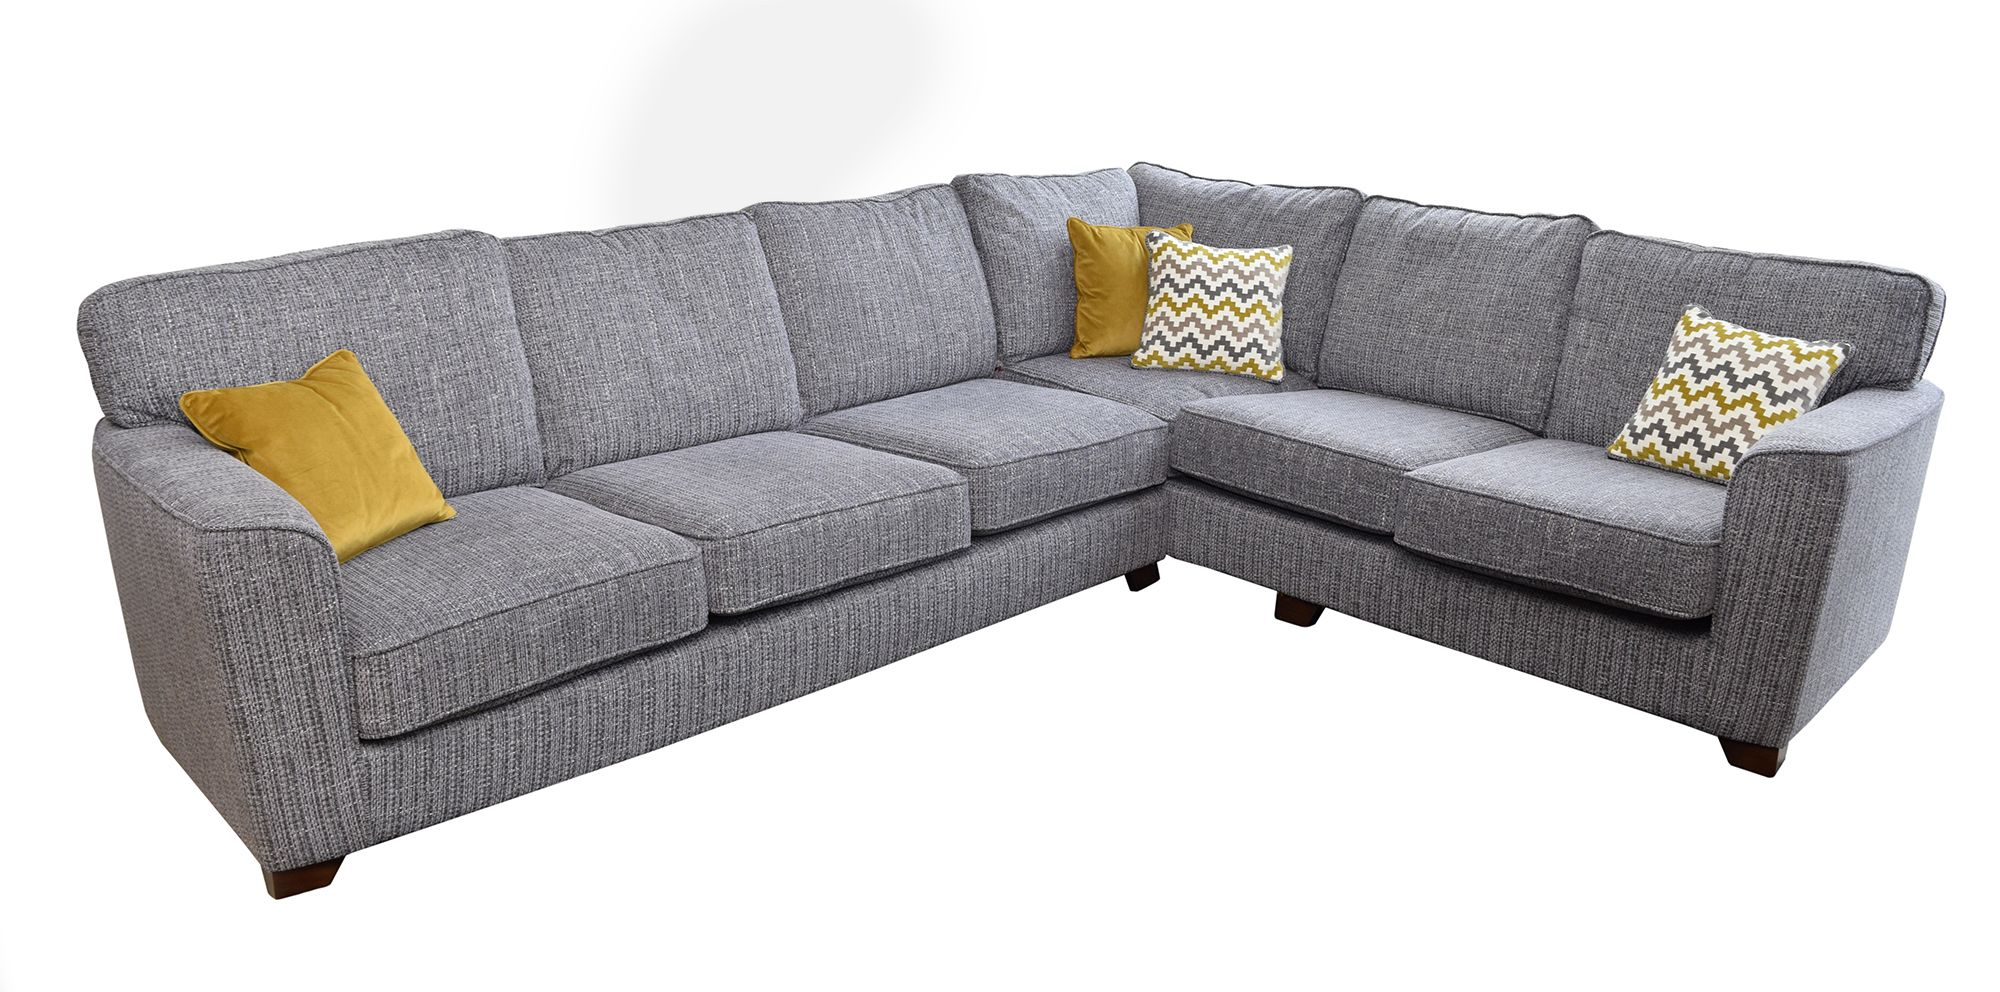 Bali 4 seater 2 seater corner sofa rhf fabric b all sofa collections meubles